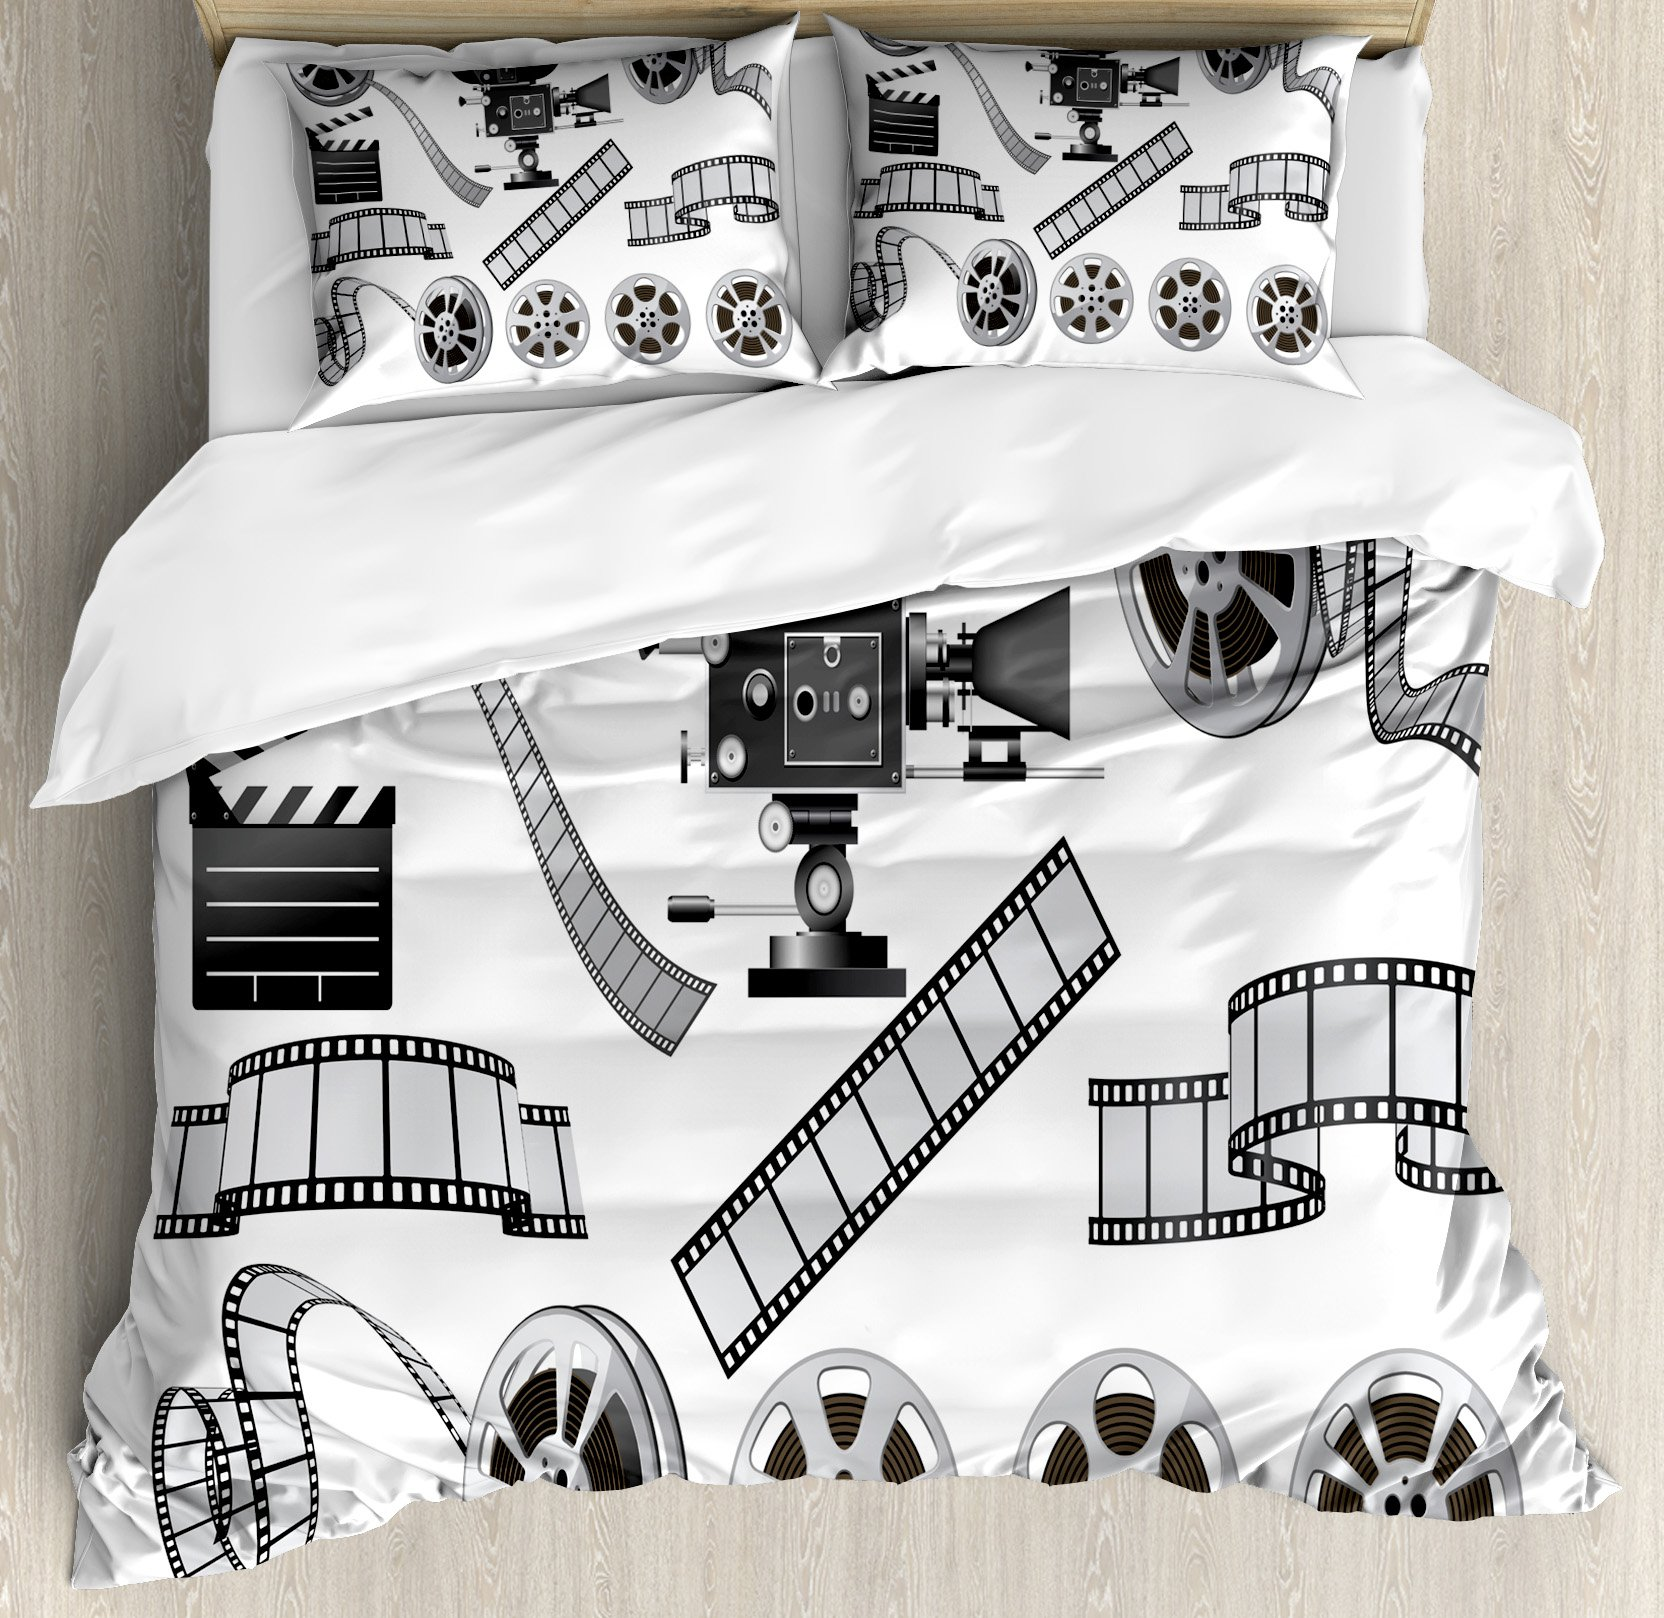 Ambesonne Movie Theater Queen Size Duvet Cover Set, Movie Industry Themed Greyscale Illustration of Projector Film Slate and Reel, Decorative 3 Piece Bedding Set with 2 Pillow Shams, Grey Black